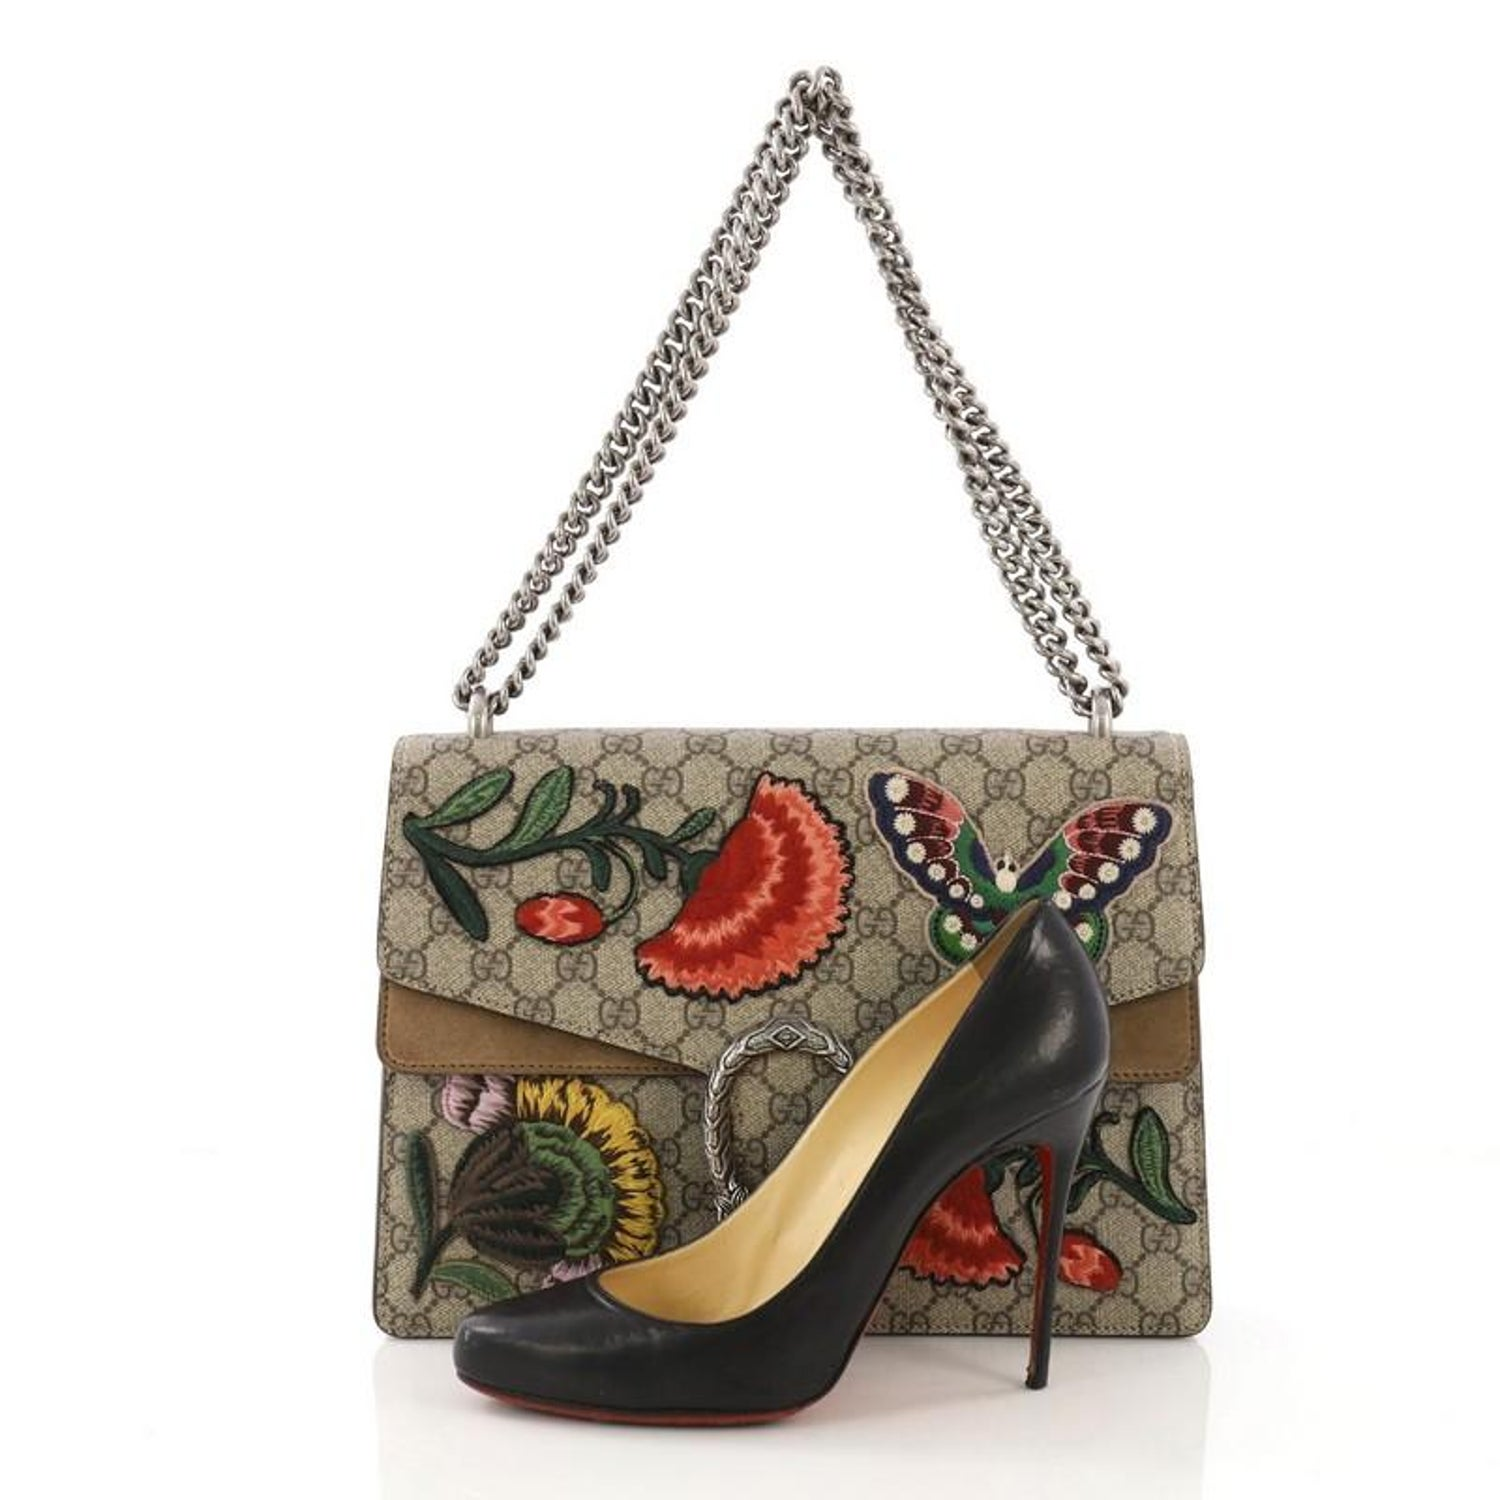 321f2d0e75c Gucci Dionysus Handbag Embroidered GG Coated Canvas Medium For Sale at  1stdibs